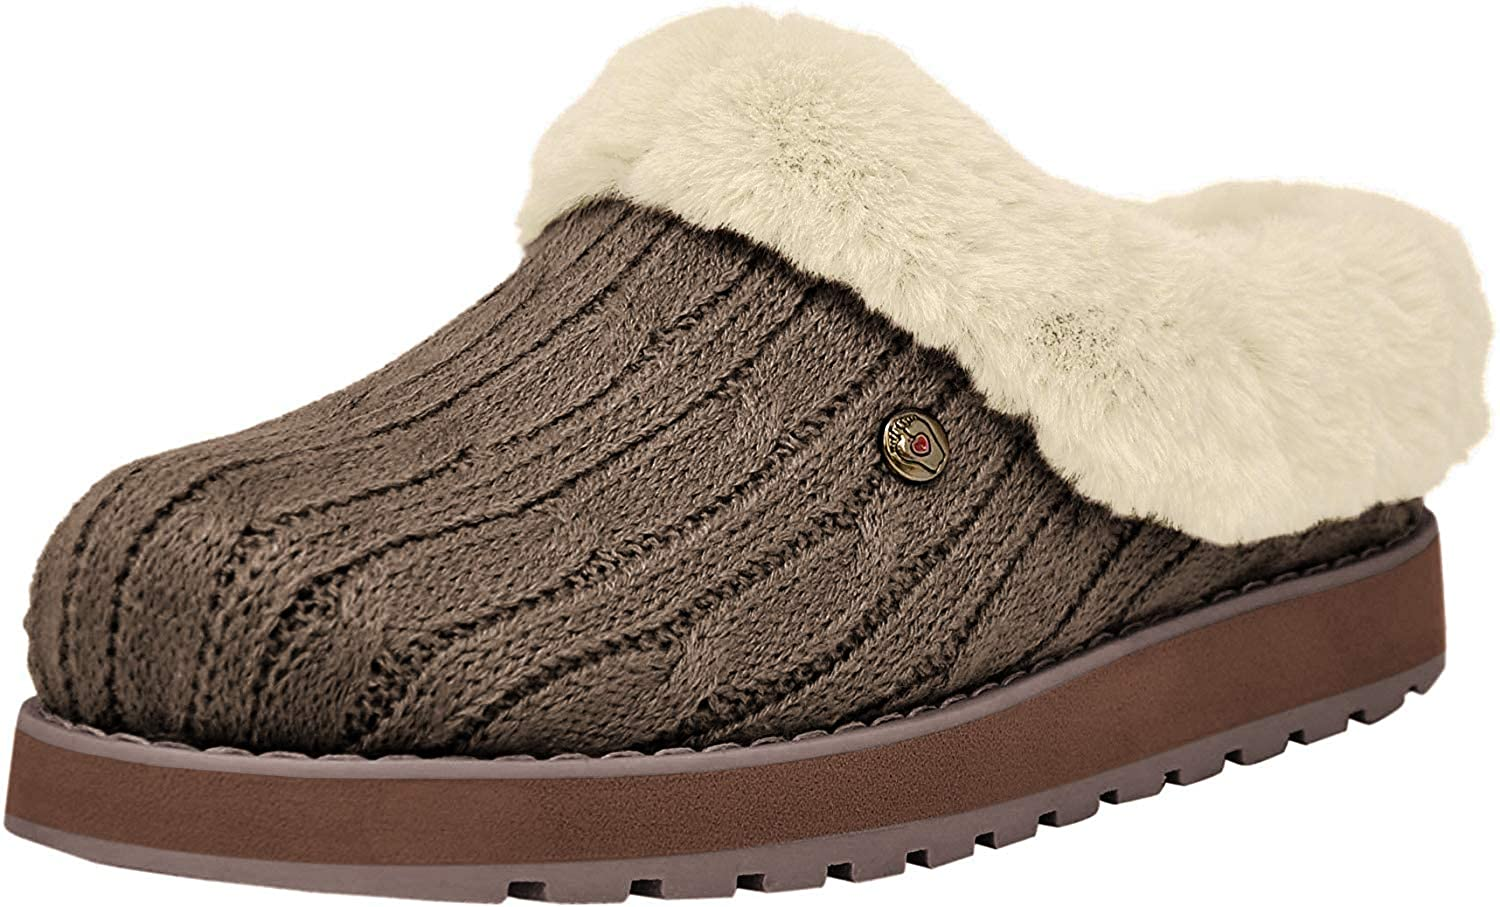 BOBS from Skechers Women's Keepsakes Ice Angel Slipper, Taupe/Natural, 6 M US